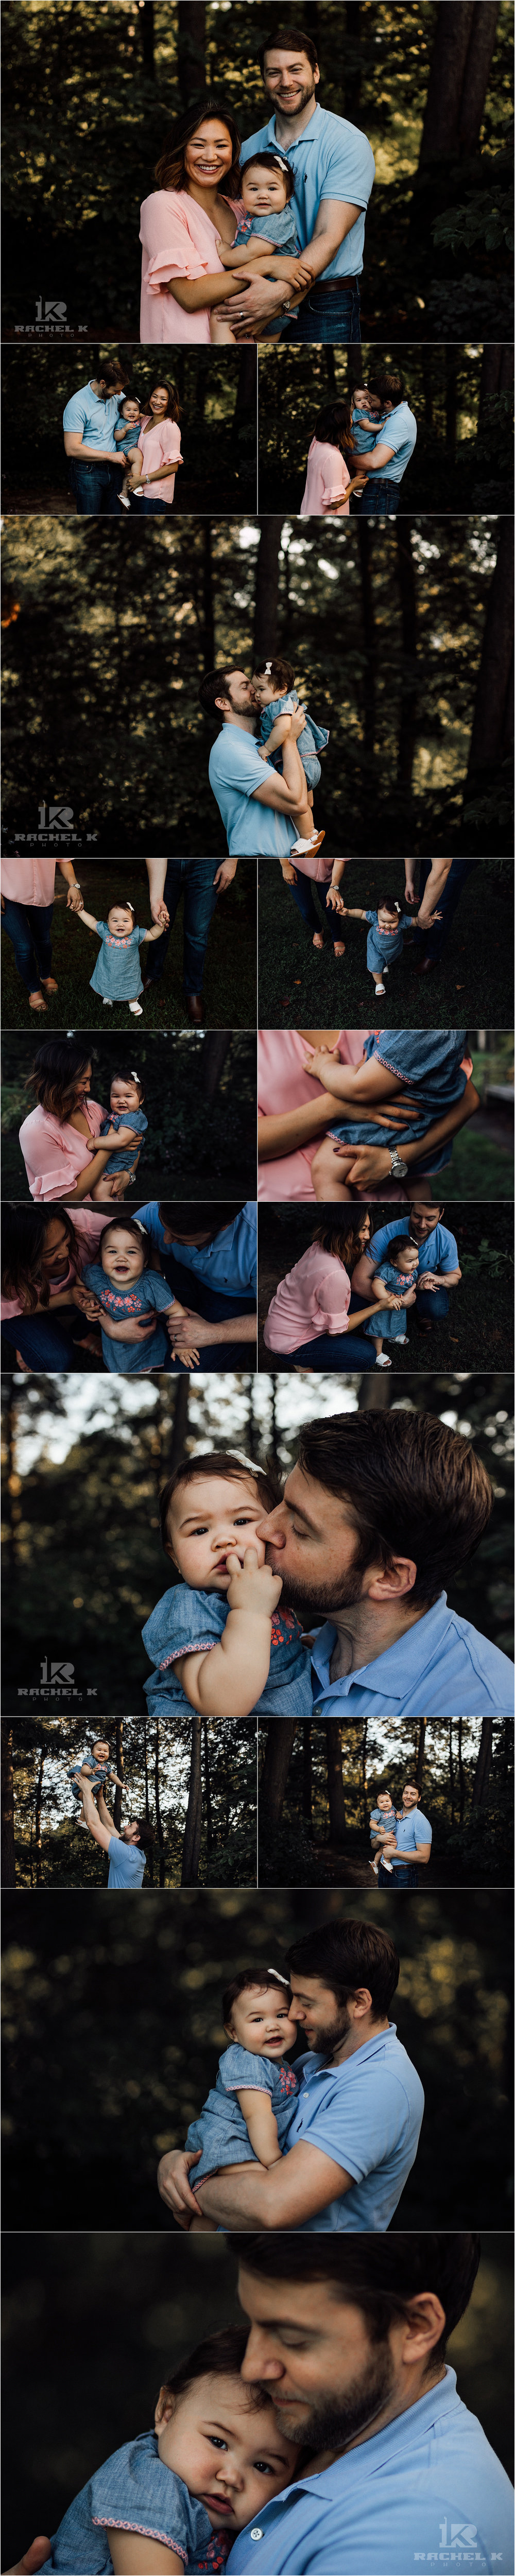 Northern Virginia family session at Green Springs Gardens in Alexandria Virginia by Rachel K Photo